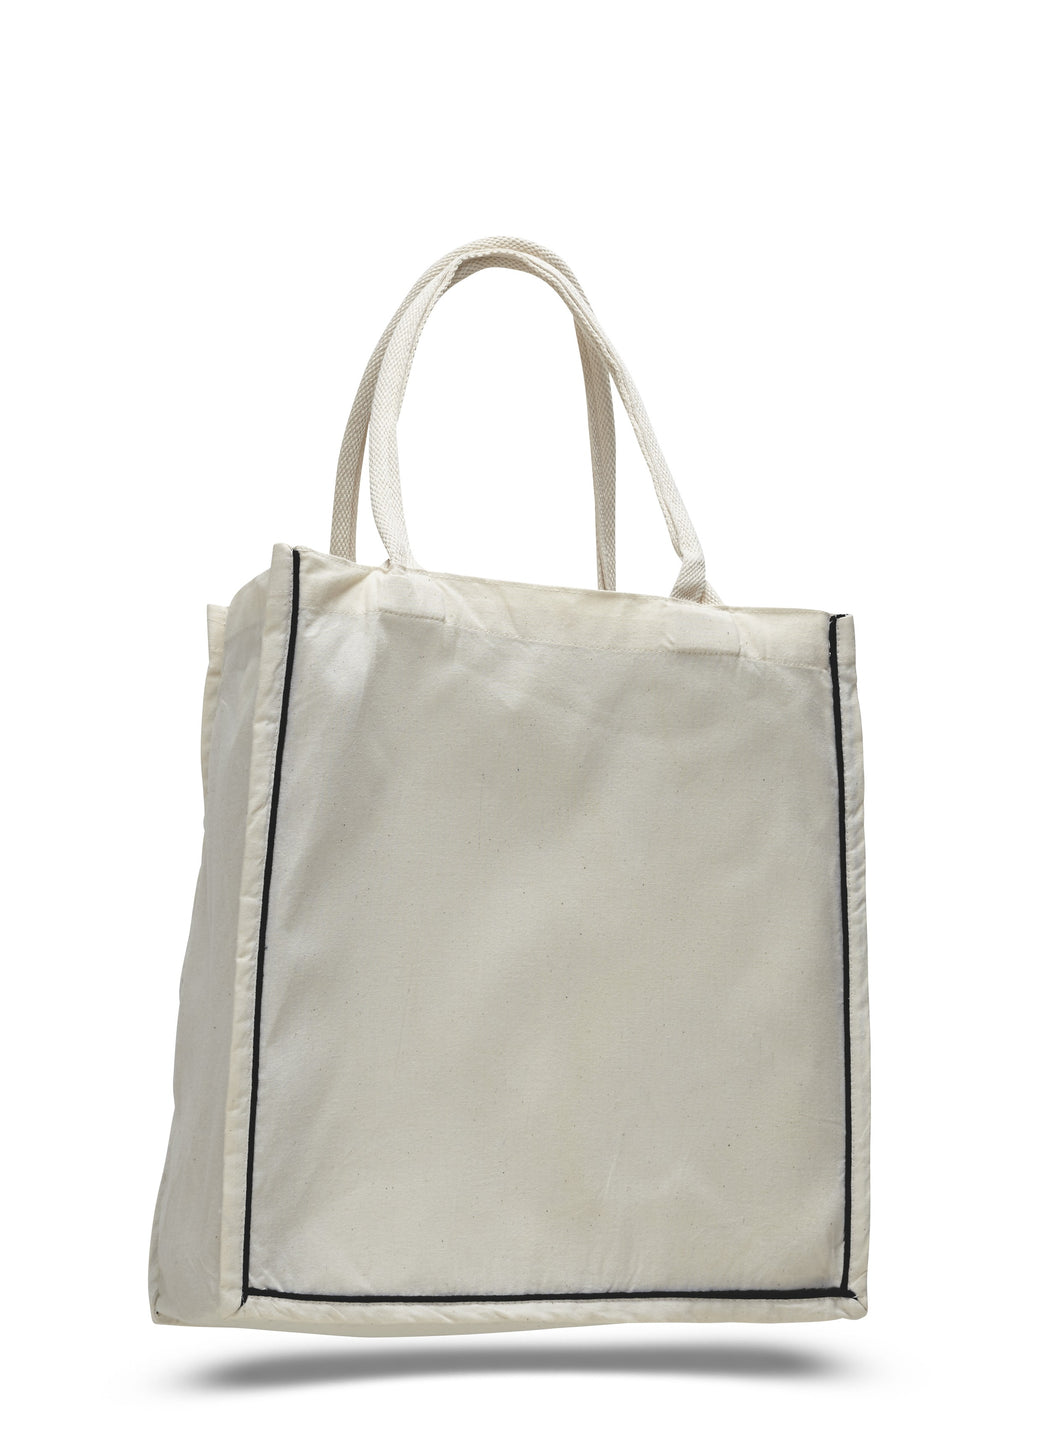 Quality All Cotton Canvas Tote with Stripe Accent Available at Wholesale Prices! Just $3.29 Each.